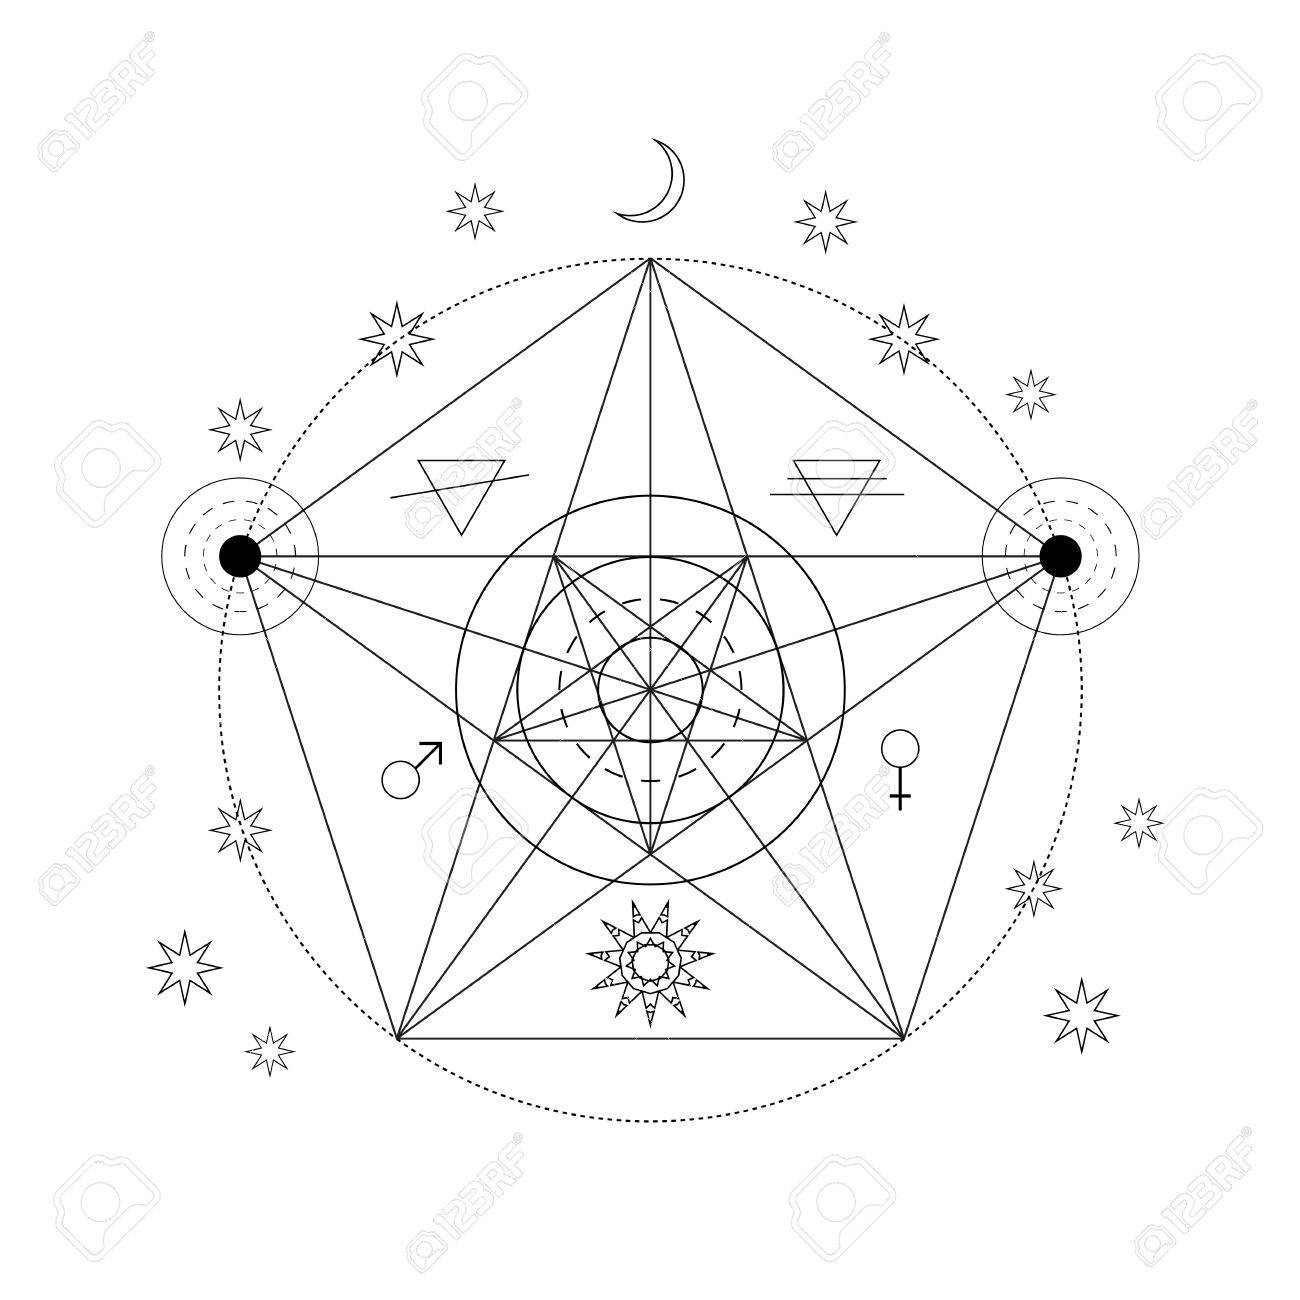 Satanic book stock photos pictures royalty free satanic book mystical geometry symbol linear alchemy occult philosophical sign for music album cover buycottarizona